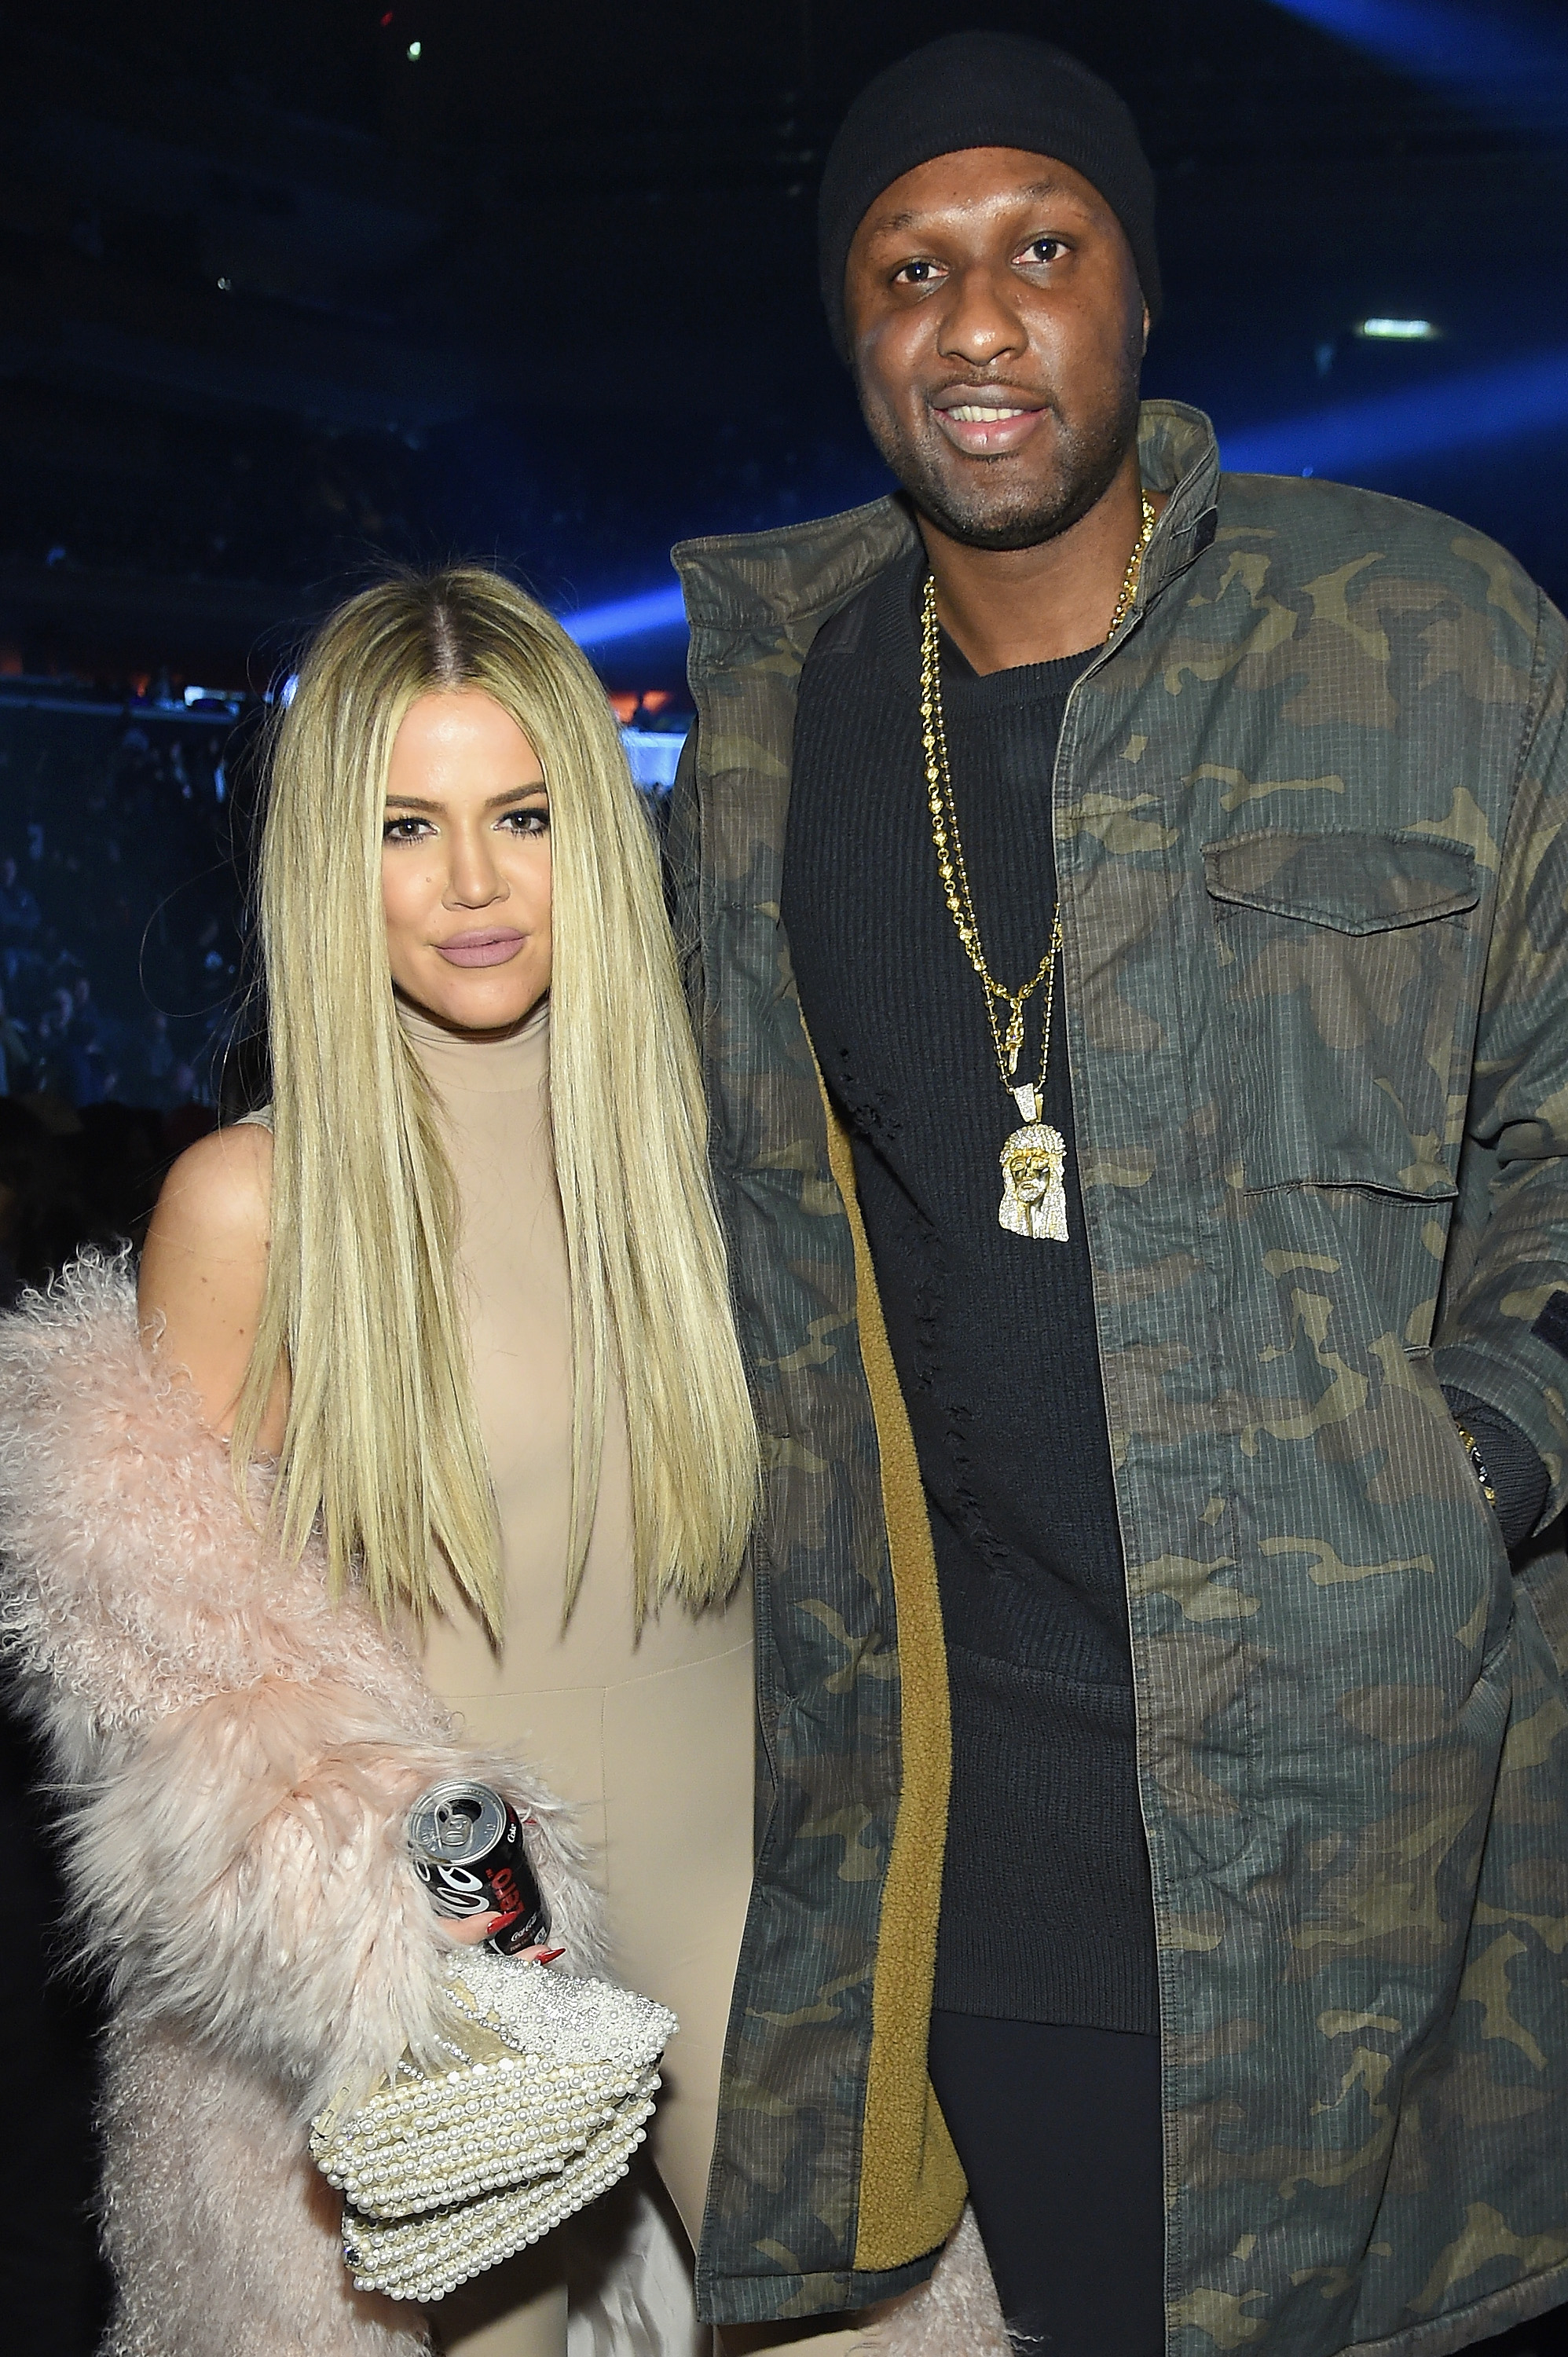 Khloe Kardashian and Lamar Odom attend Kanye West Yeezy Season 3 on February 11, 2016, in New York City. (Getty Images)